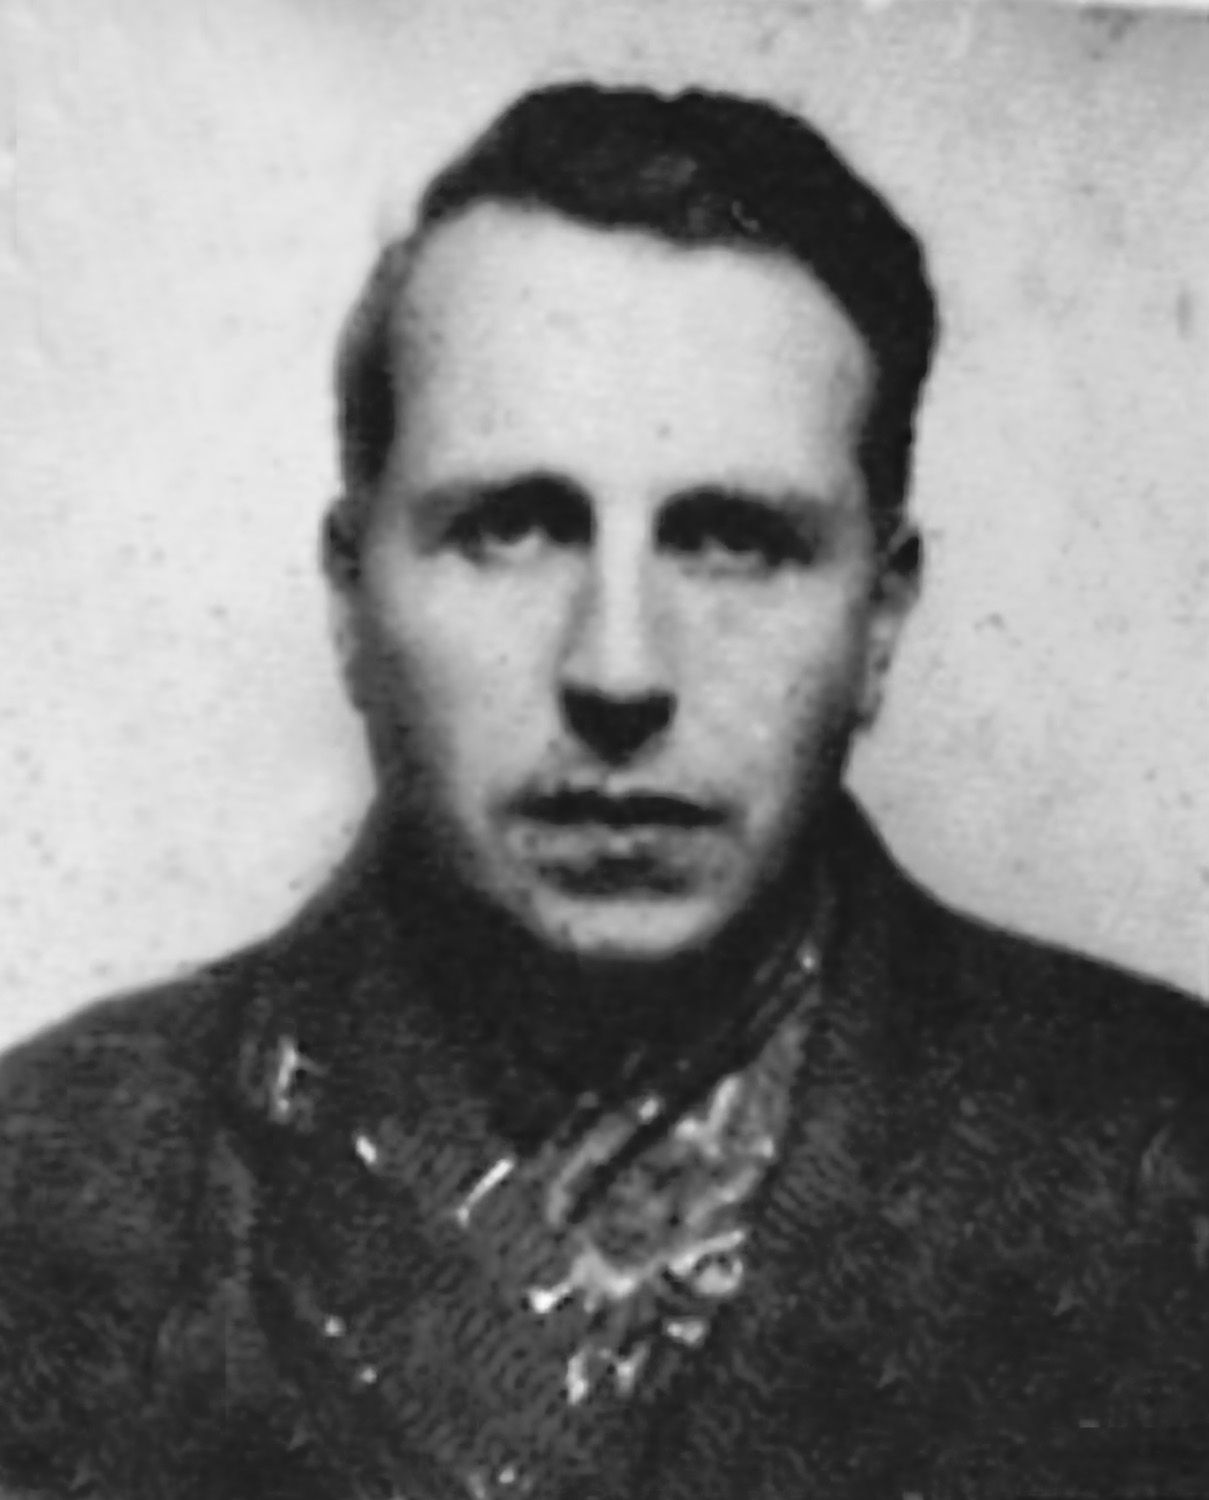 Bataille in 1940